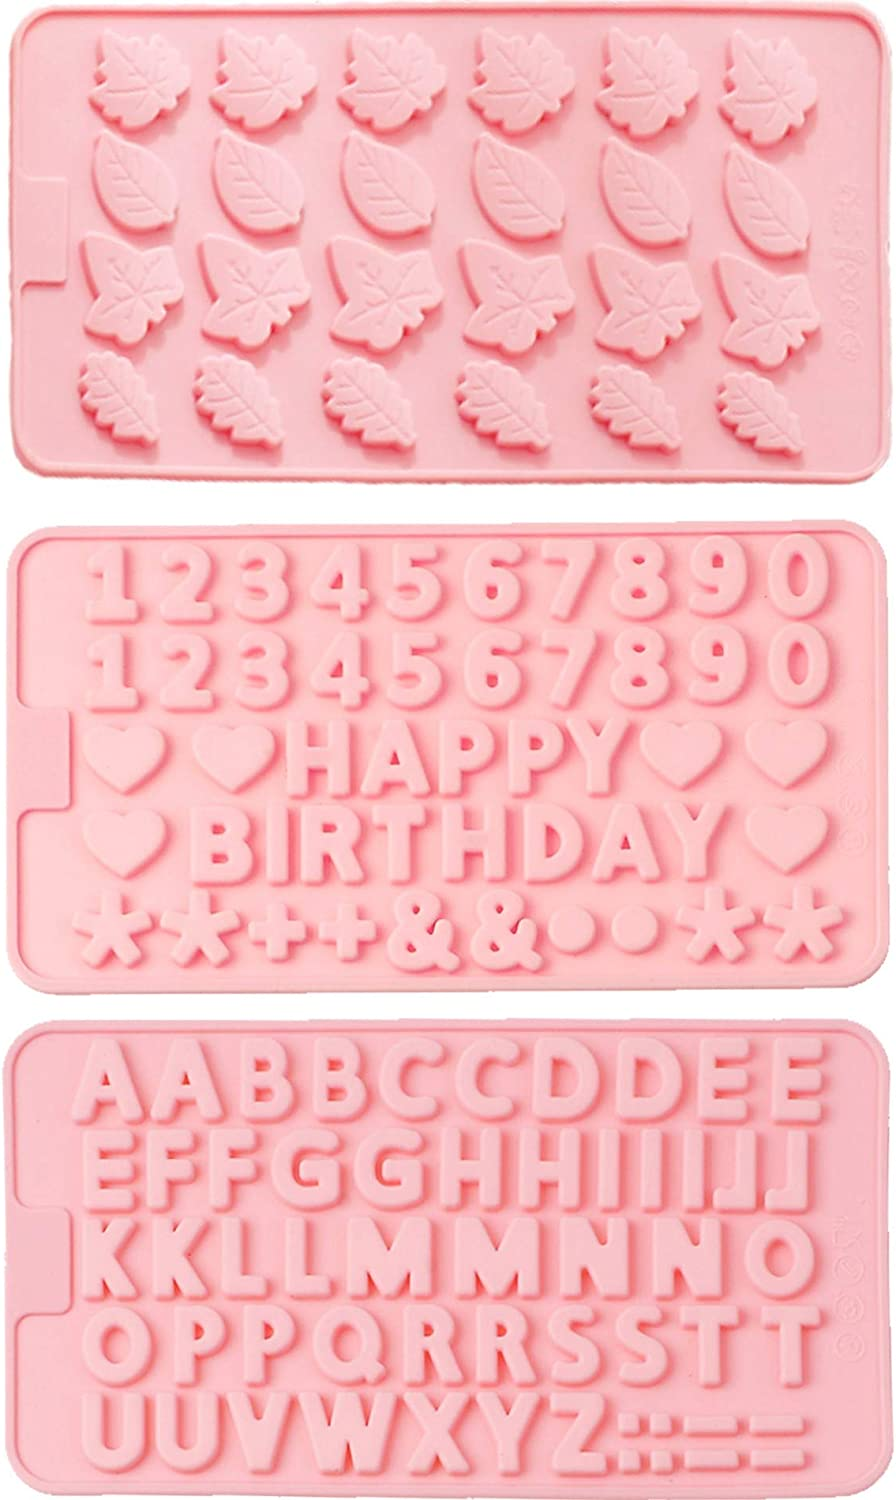 Set of 3 Chocolate Leaves,Letter Molds,Number,Happy Birthday and Digital Silicone Matrix Non-stick Food Grade Silicone Matrix (Pink) for Chocolate,Candy, Jelly, Ice cubes (leaf3)